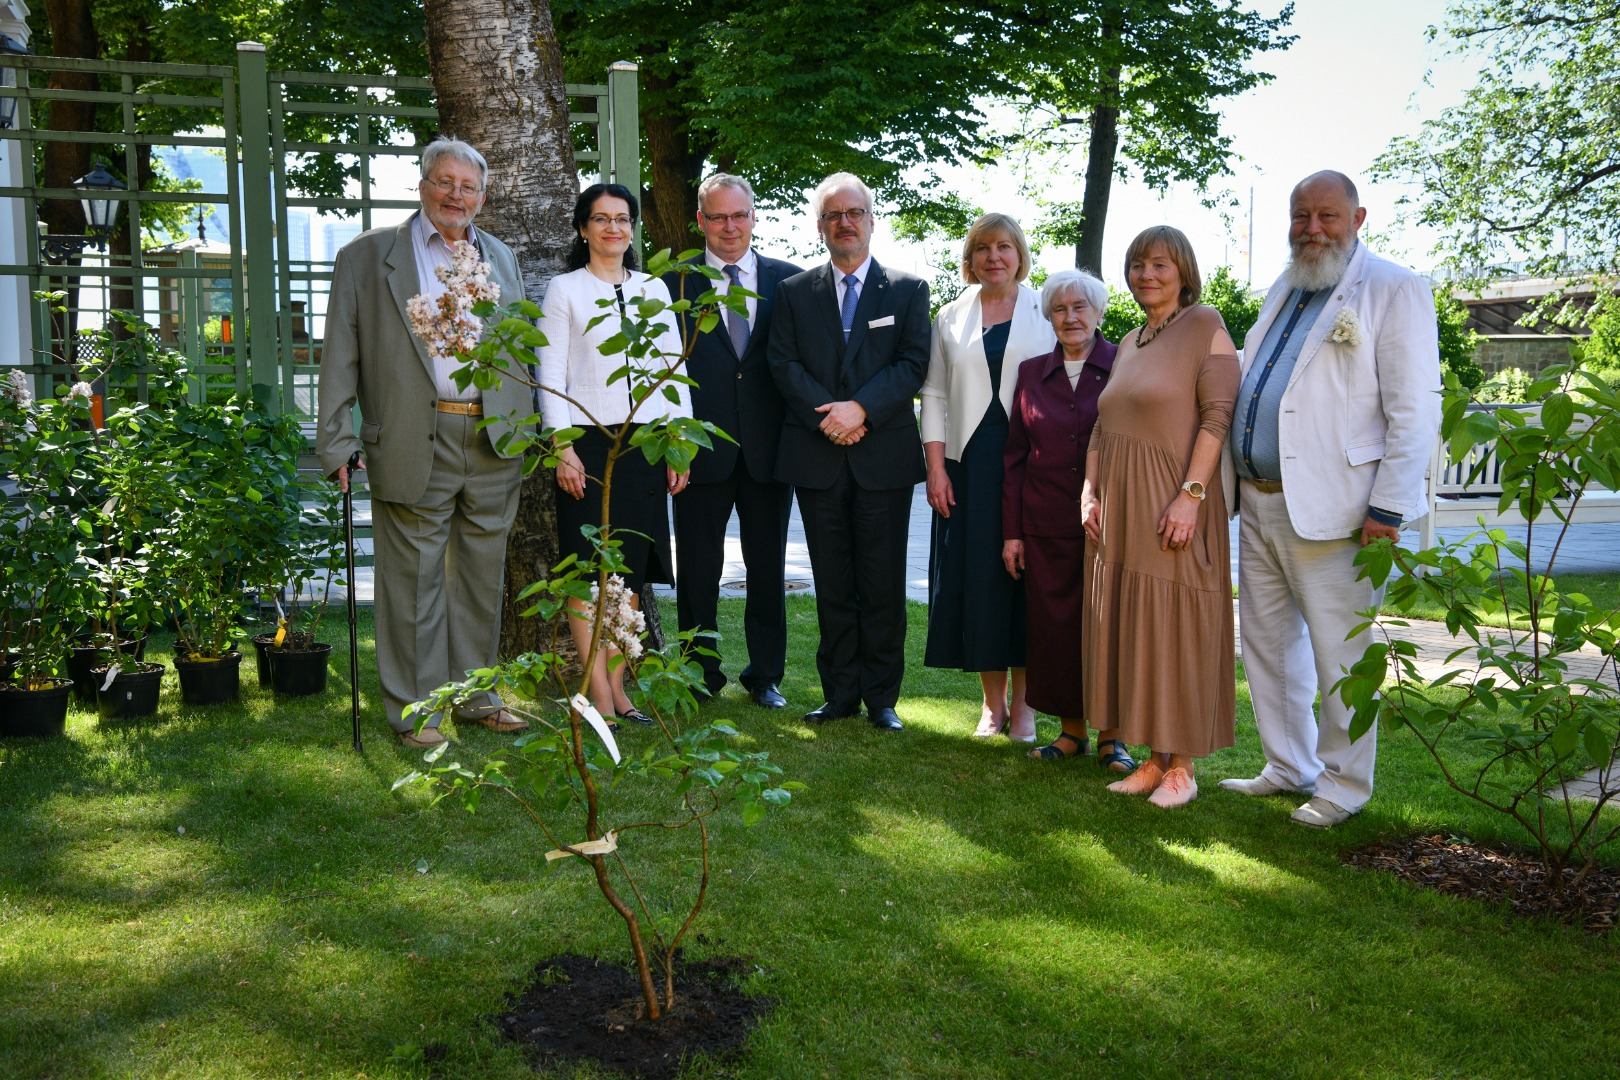 17.06.2021. On the 20th anniversary of the Administrative Procedure Law, the developers gifted a lilac to the idea initiator State President Egils Levits to be planted in the Presidential Castle garden